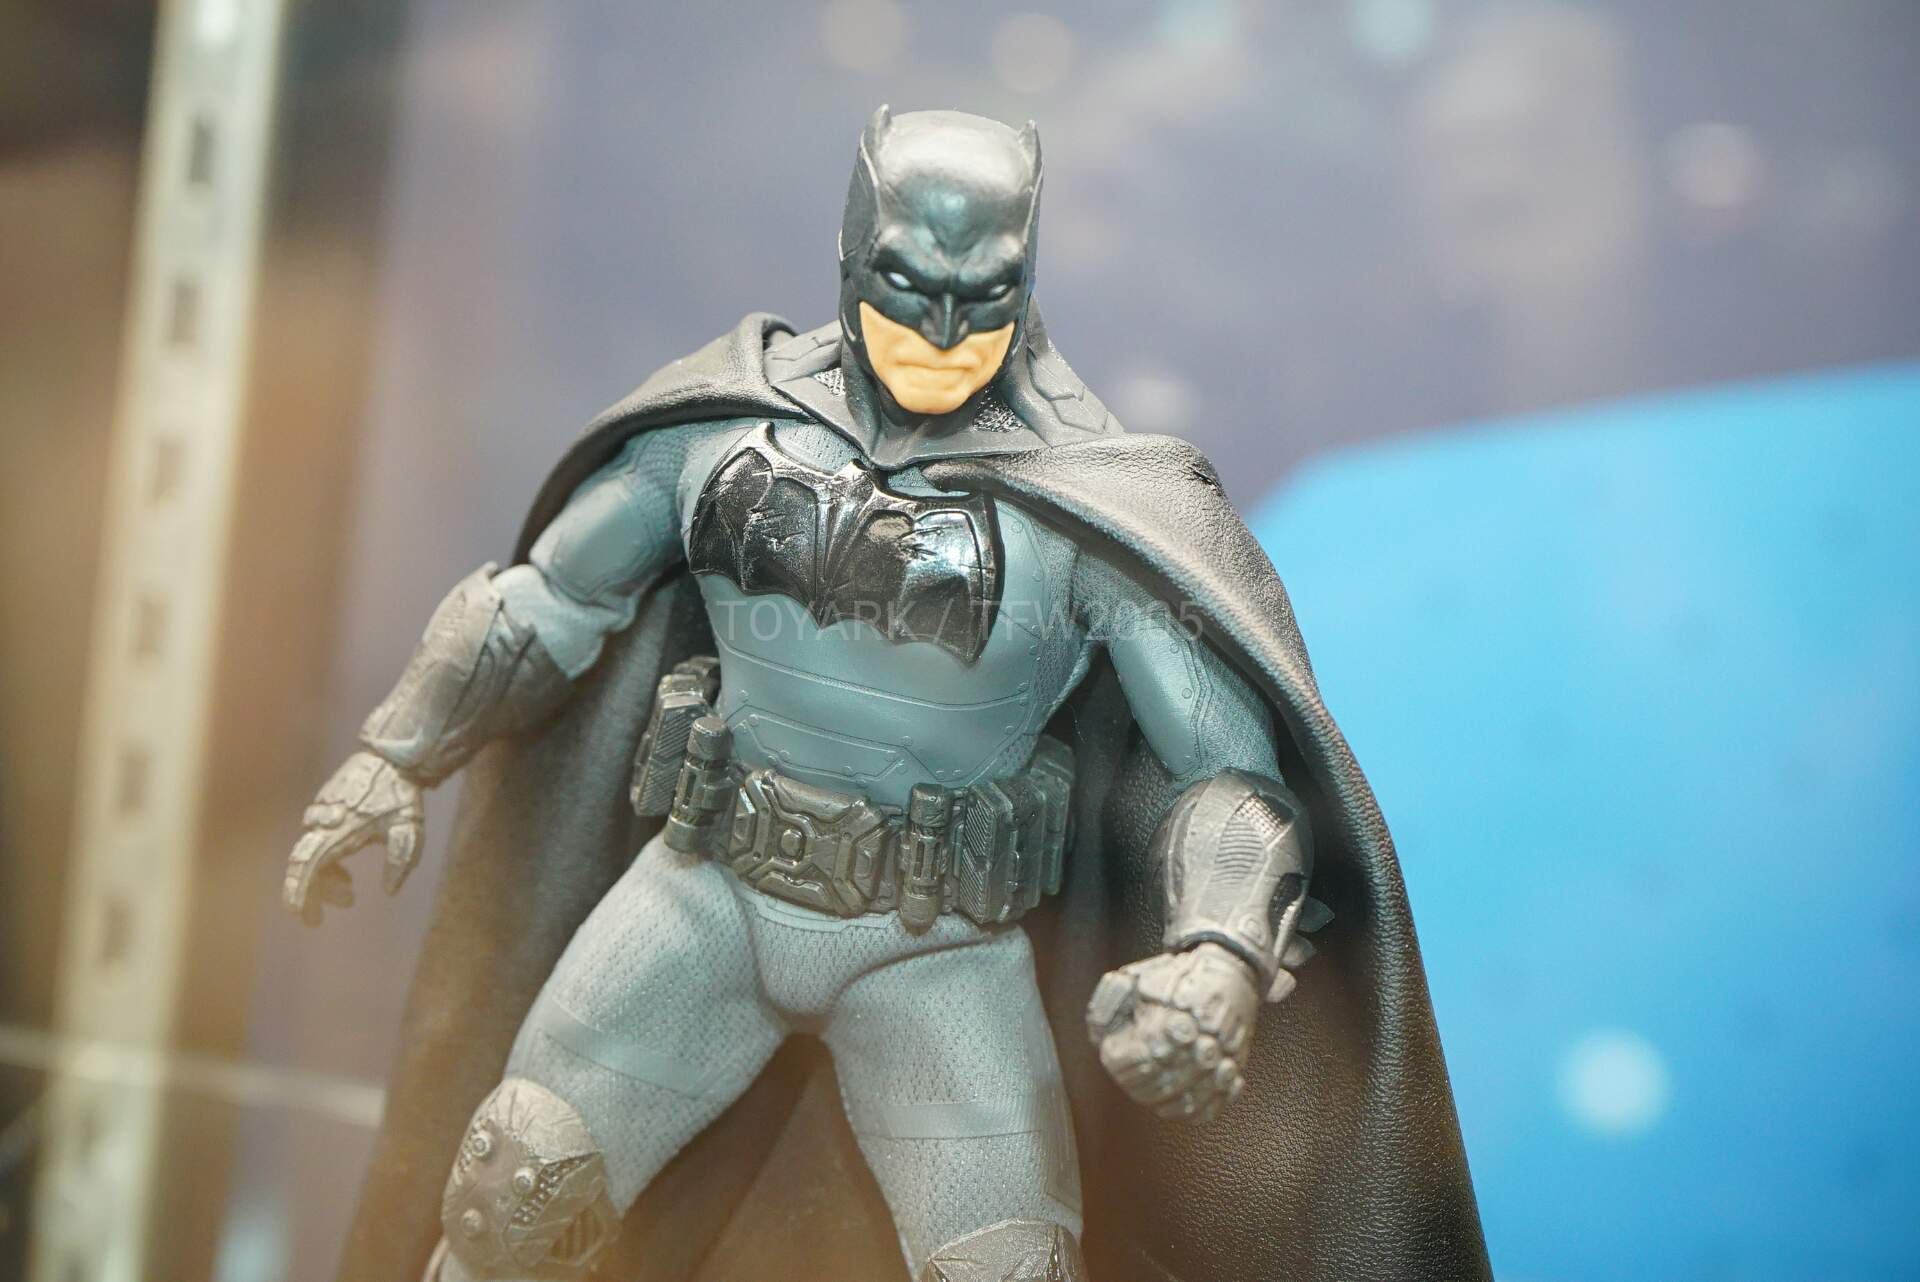 Toy-Fair-2020-Mezco-One12-020.jpg